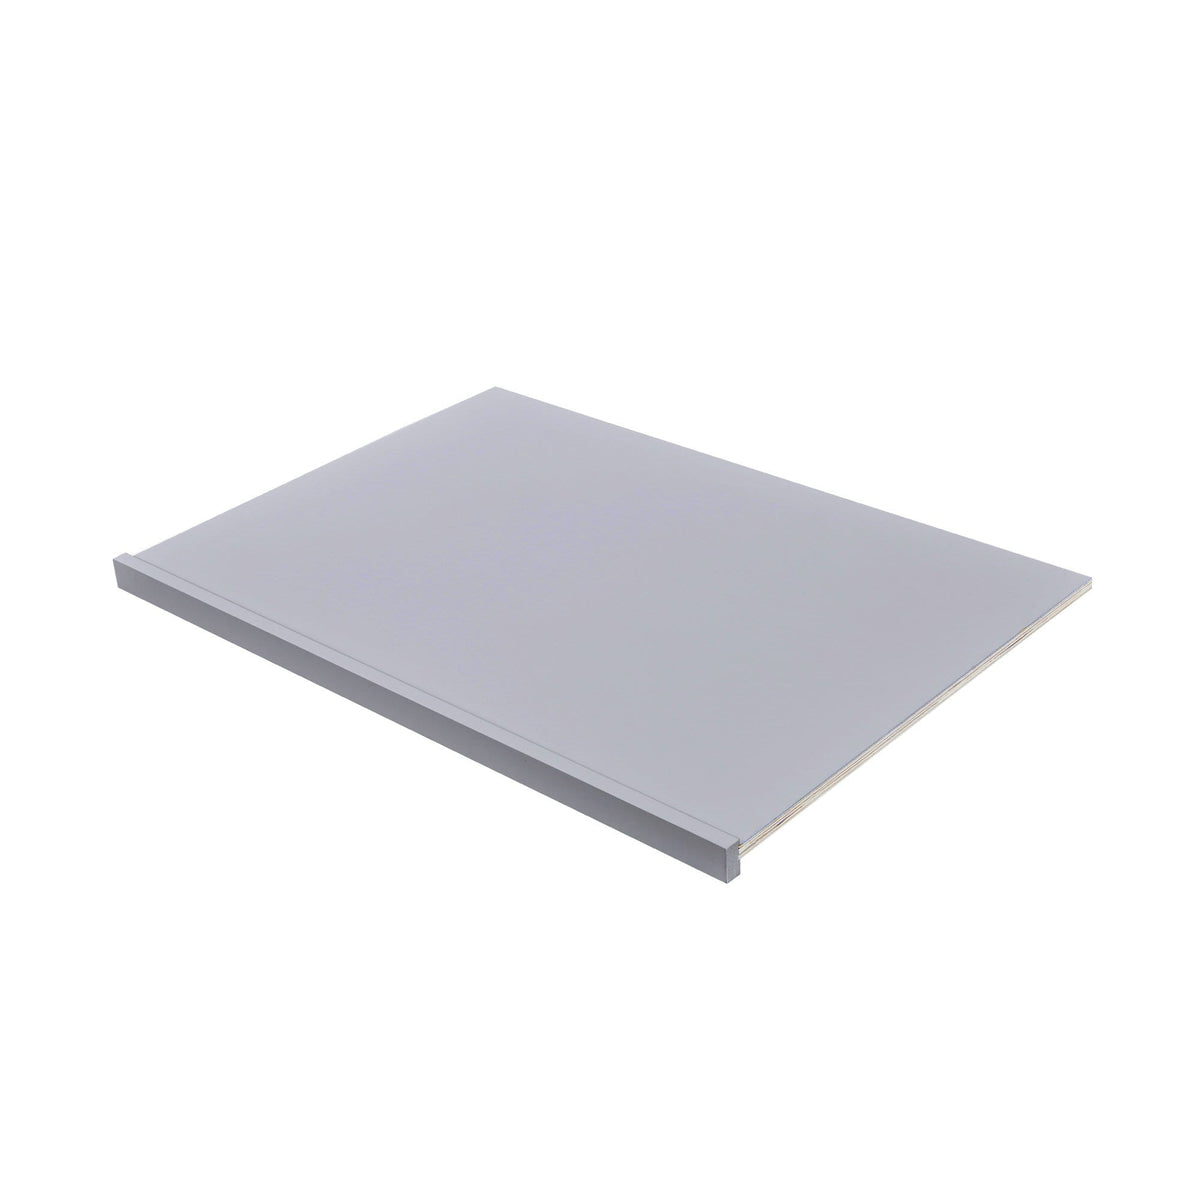 Accessories Dishwasher End Panel and Face frame Light Gray Inset Shaker D1DWPNL Inset Kitchen Cabinets